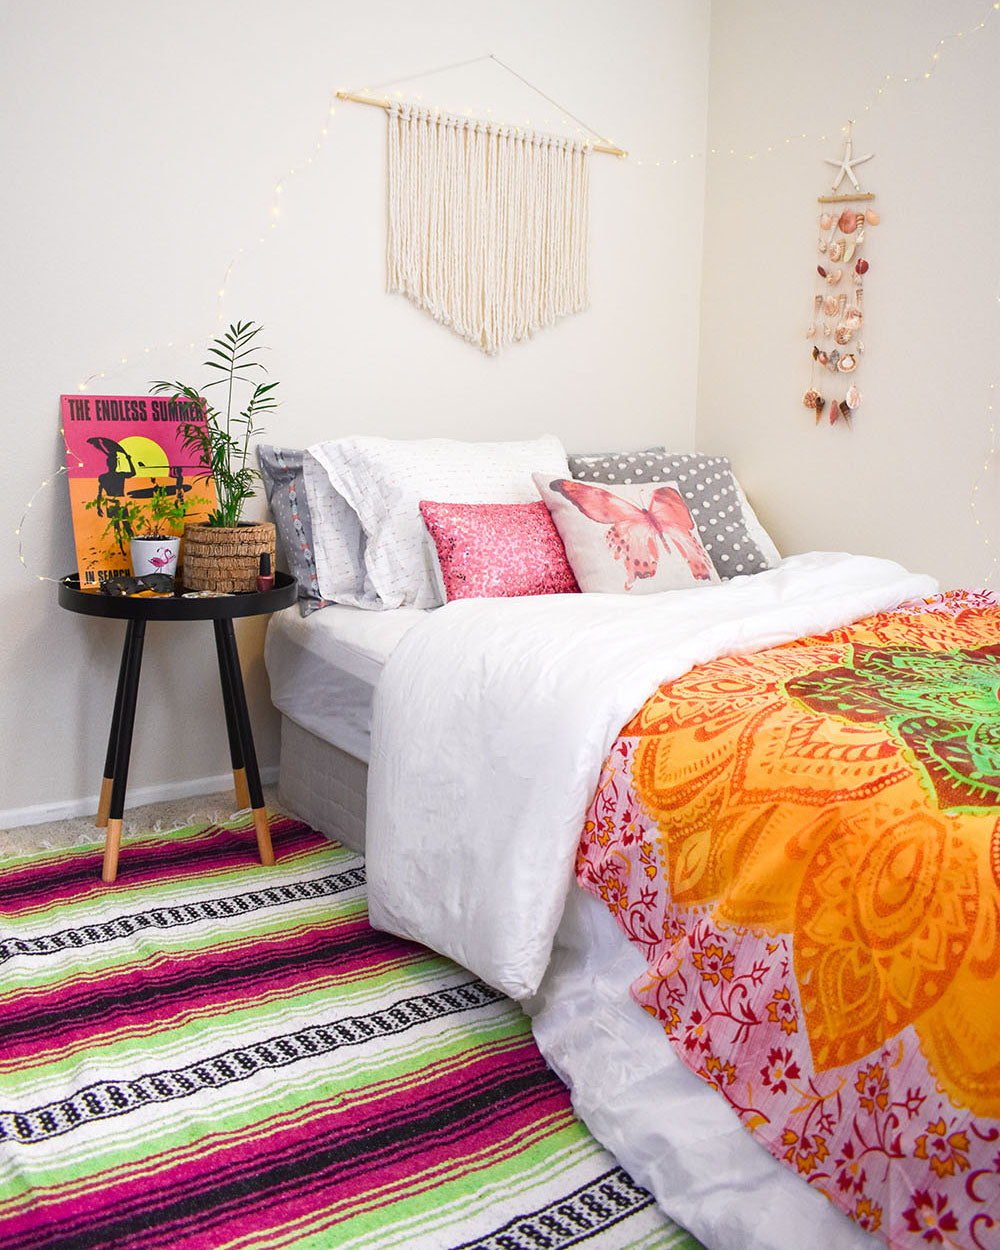 One of the best parts about moving into a new dorm room freshman year (or even your first apartment, post-dorm life for you sophomores and juniors) is decorating your space. Have you already started planning your dorm room decor? Here are a few ideas to get you started or add to what you already have planned.